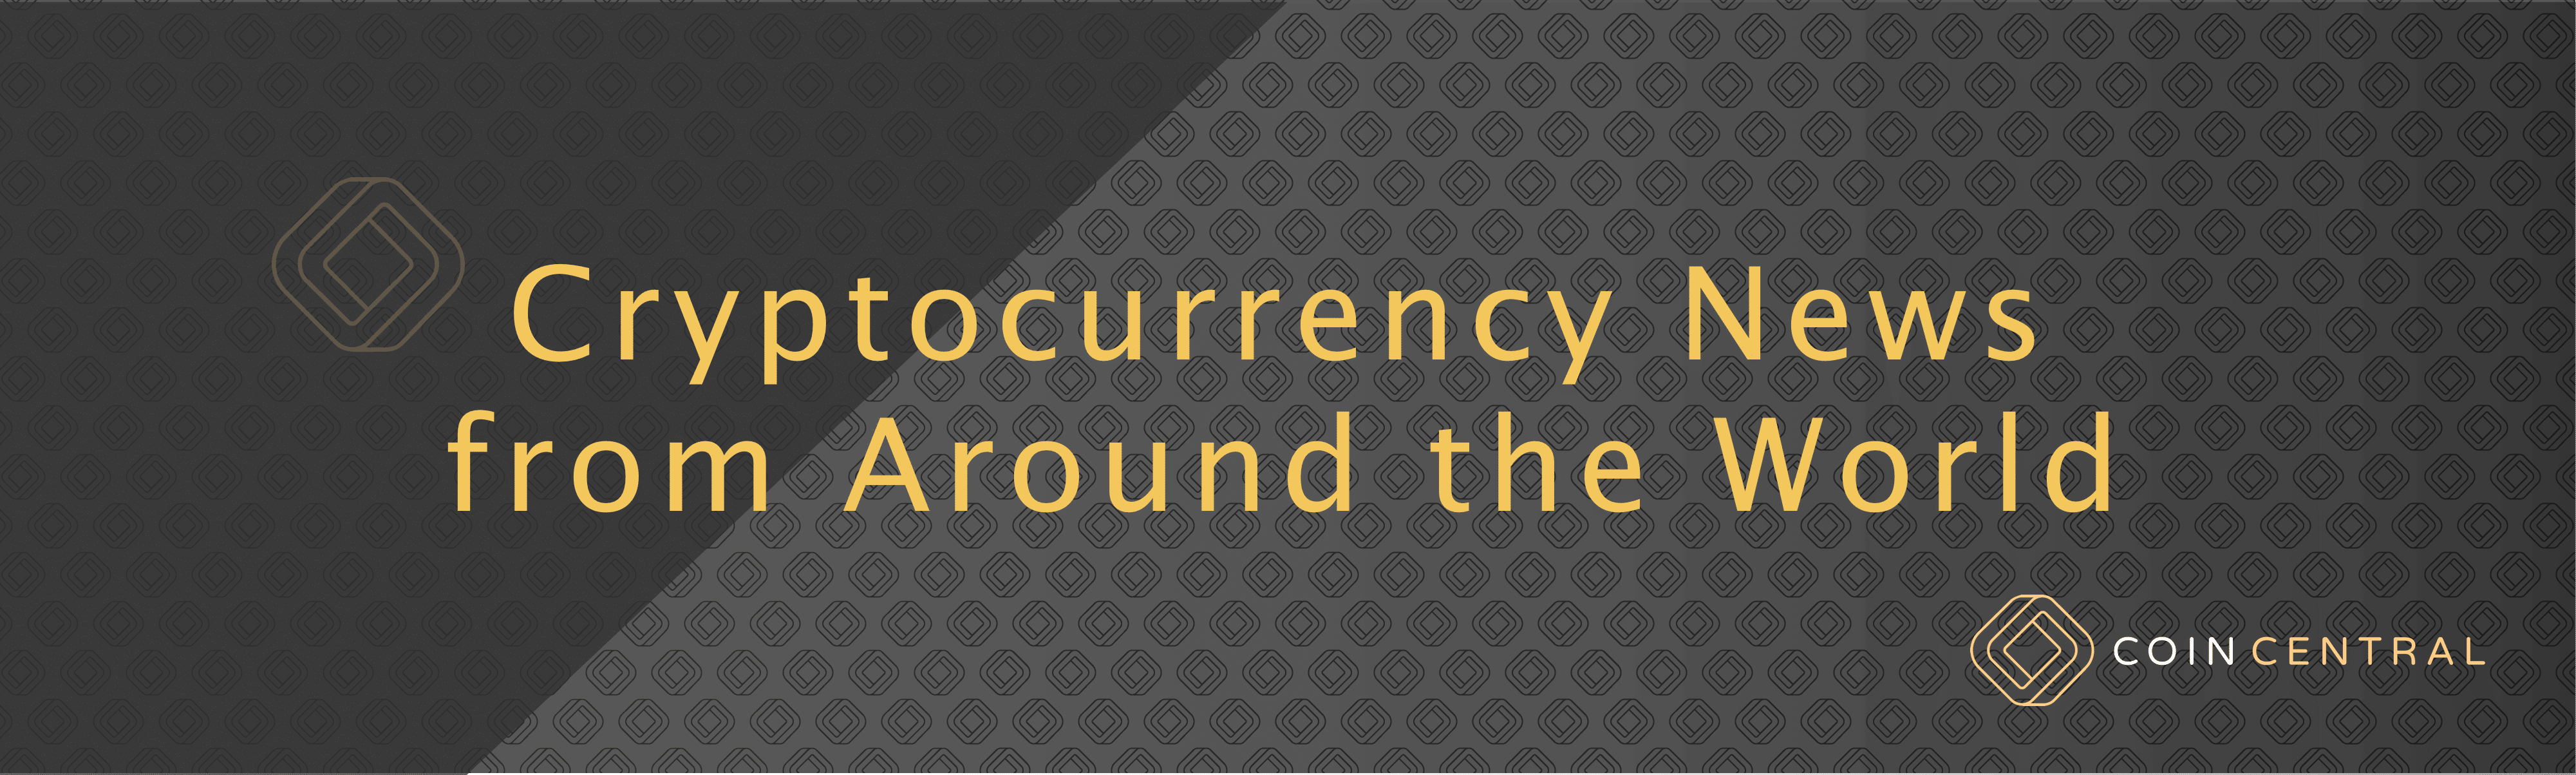 Cryptocurrency News from Around the World